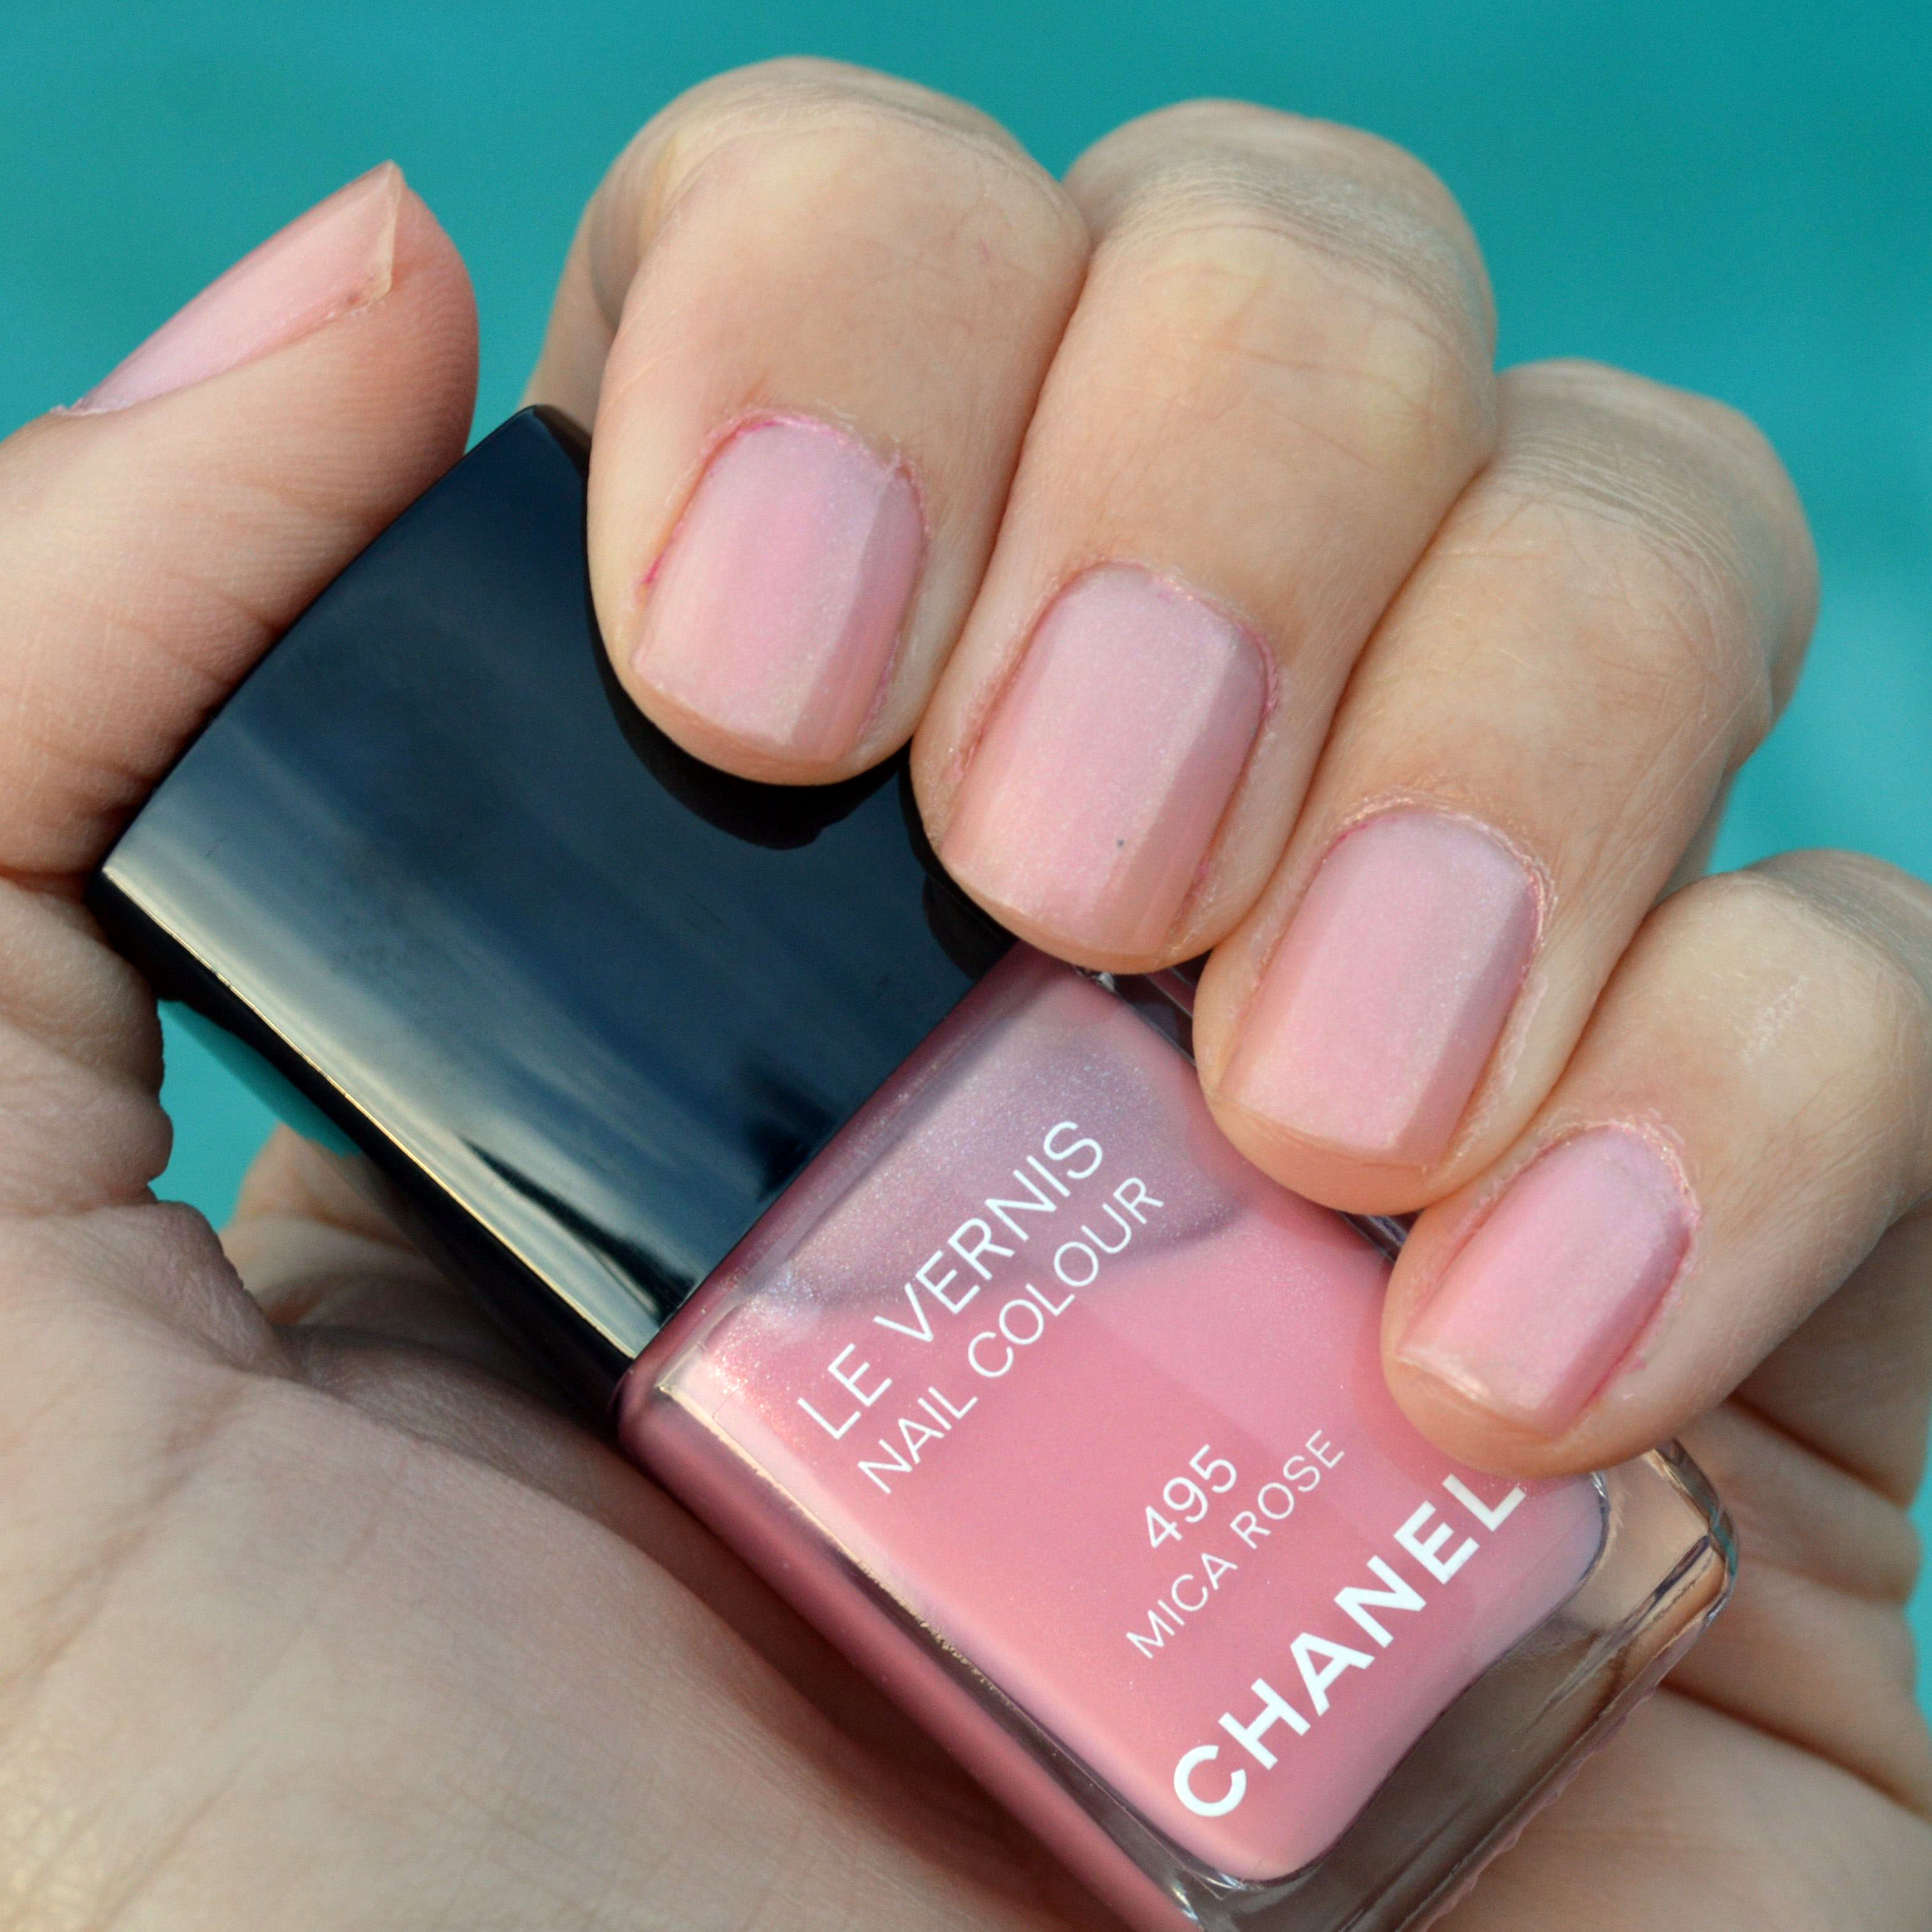 Chanel Mica Rose nail polish review – Bay Area Fashionista